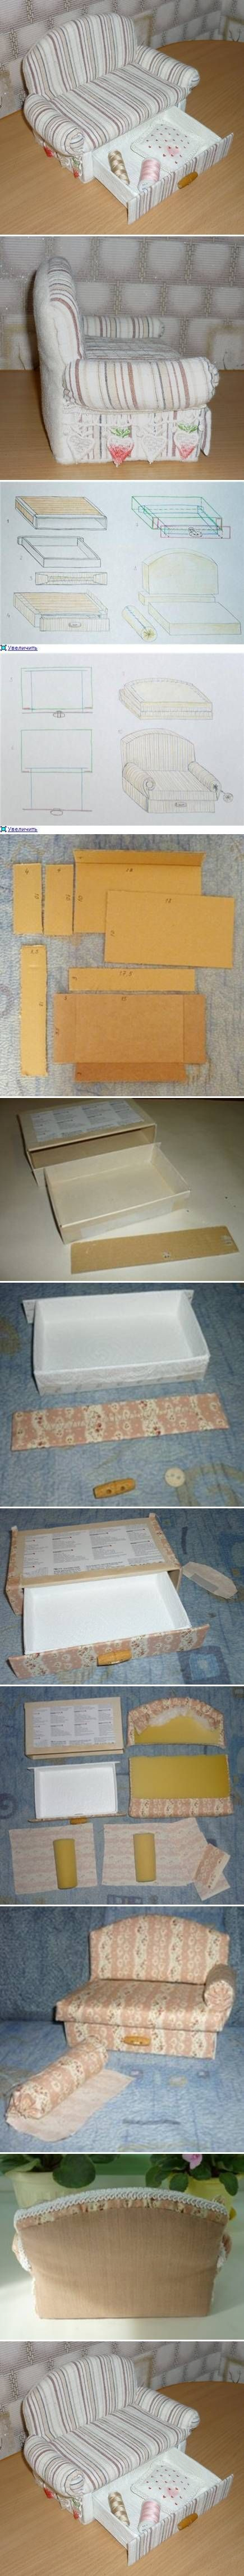 Cardboard Sofa with Drawer